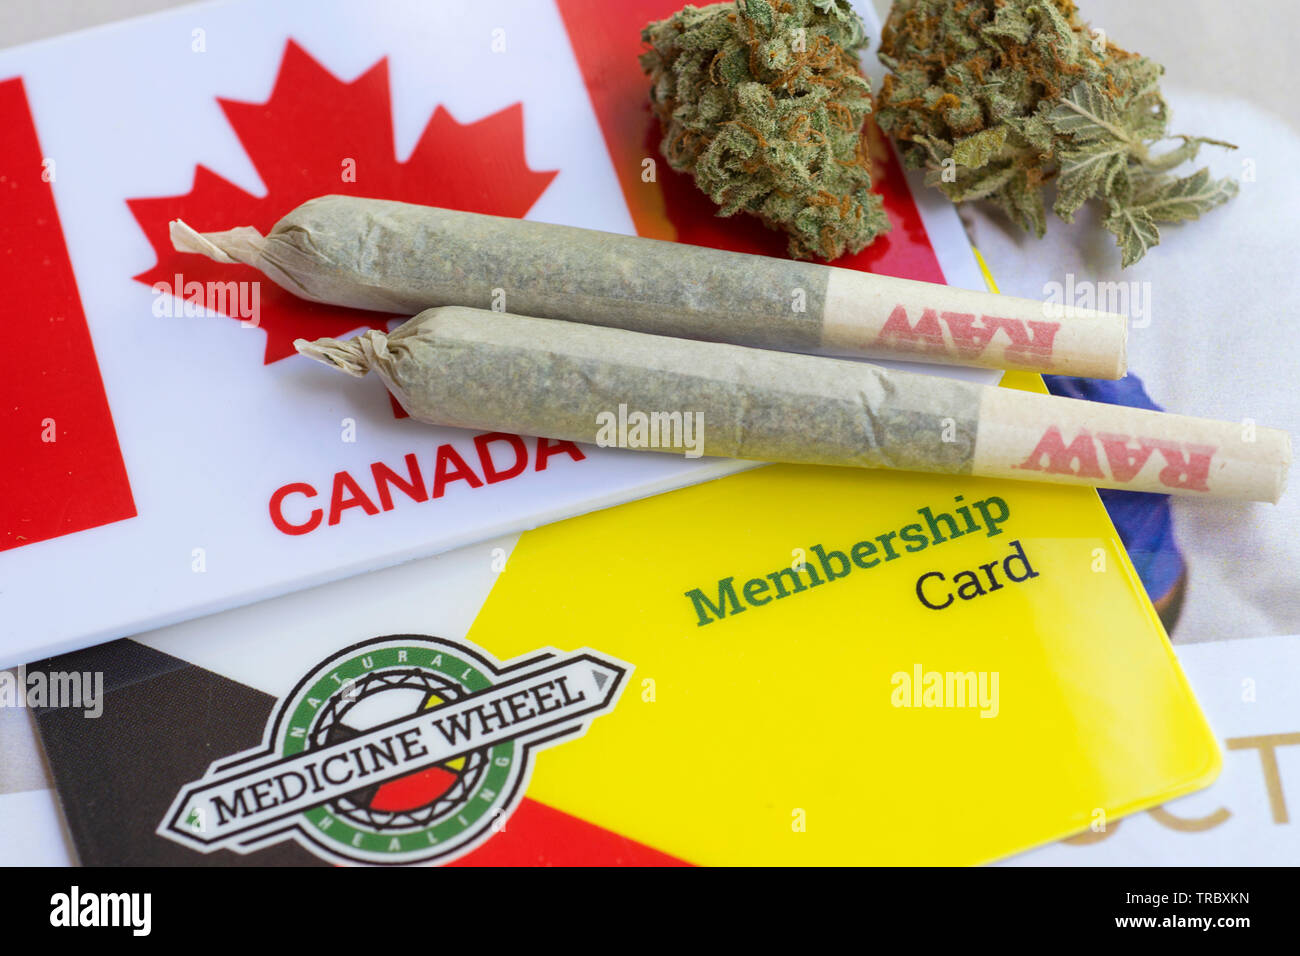 Cannabis Joints, Dried Weed Marijuana Flower, Cannabis Sativa - Stock Image